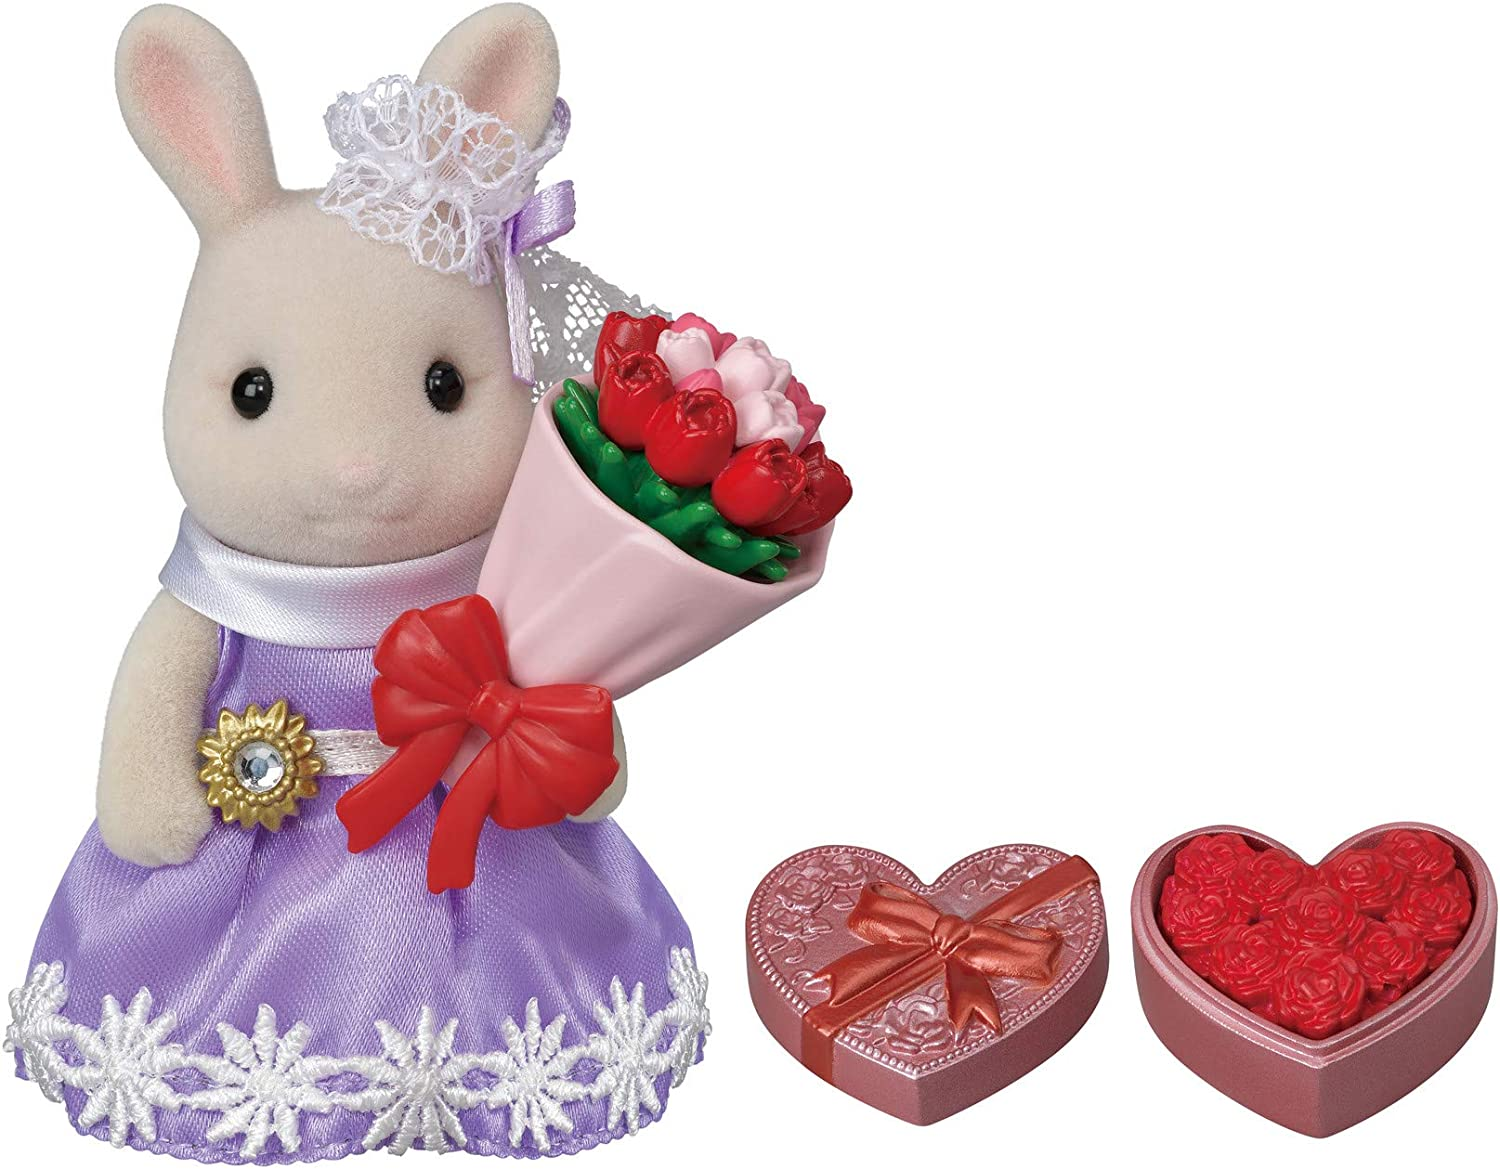 Calico Critters Town Series Flower Gifts Playset, Dollhouse Playset with Figure and Accessories